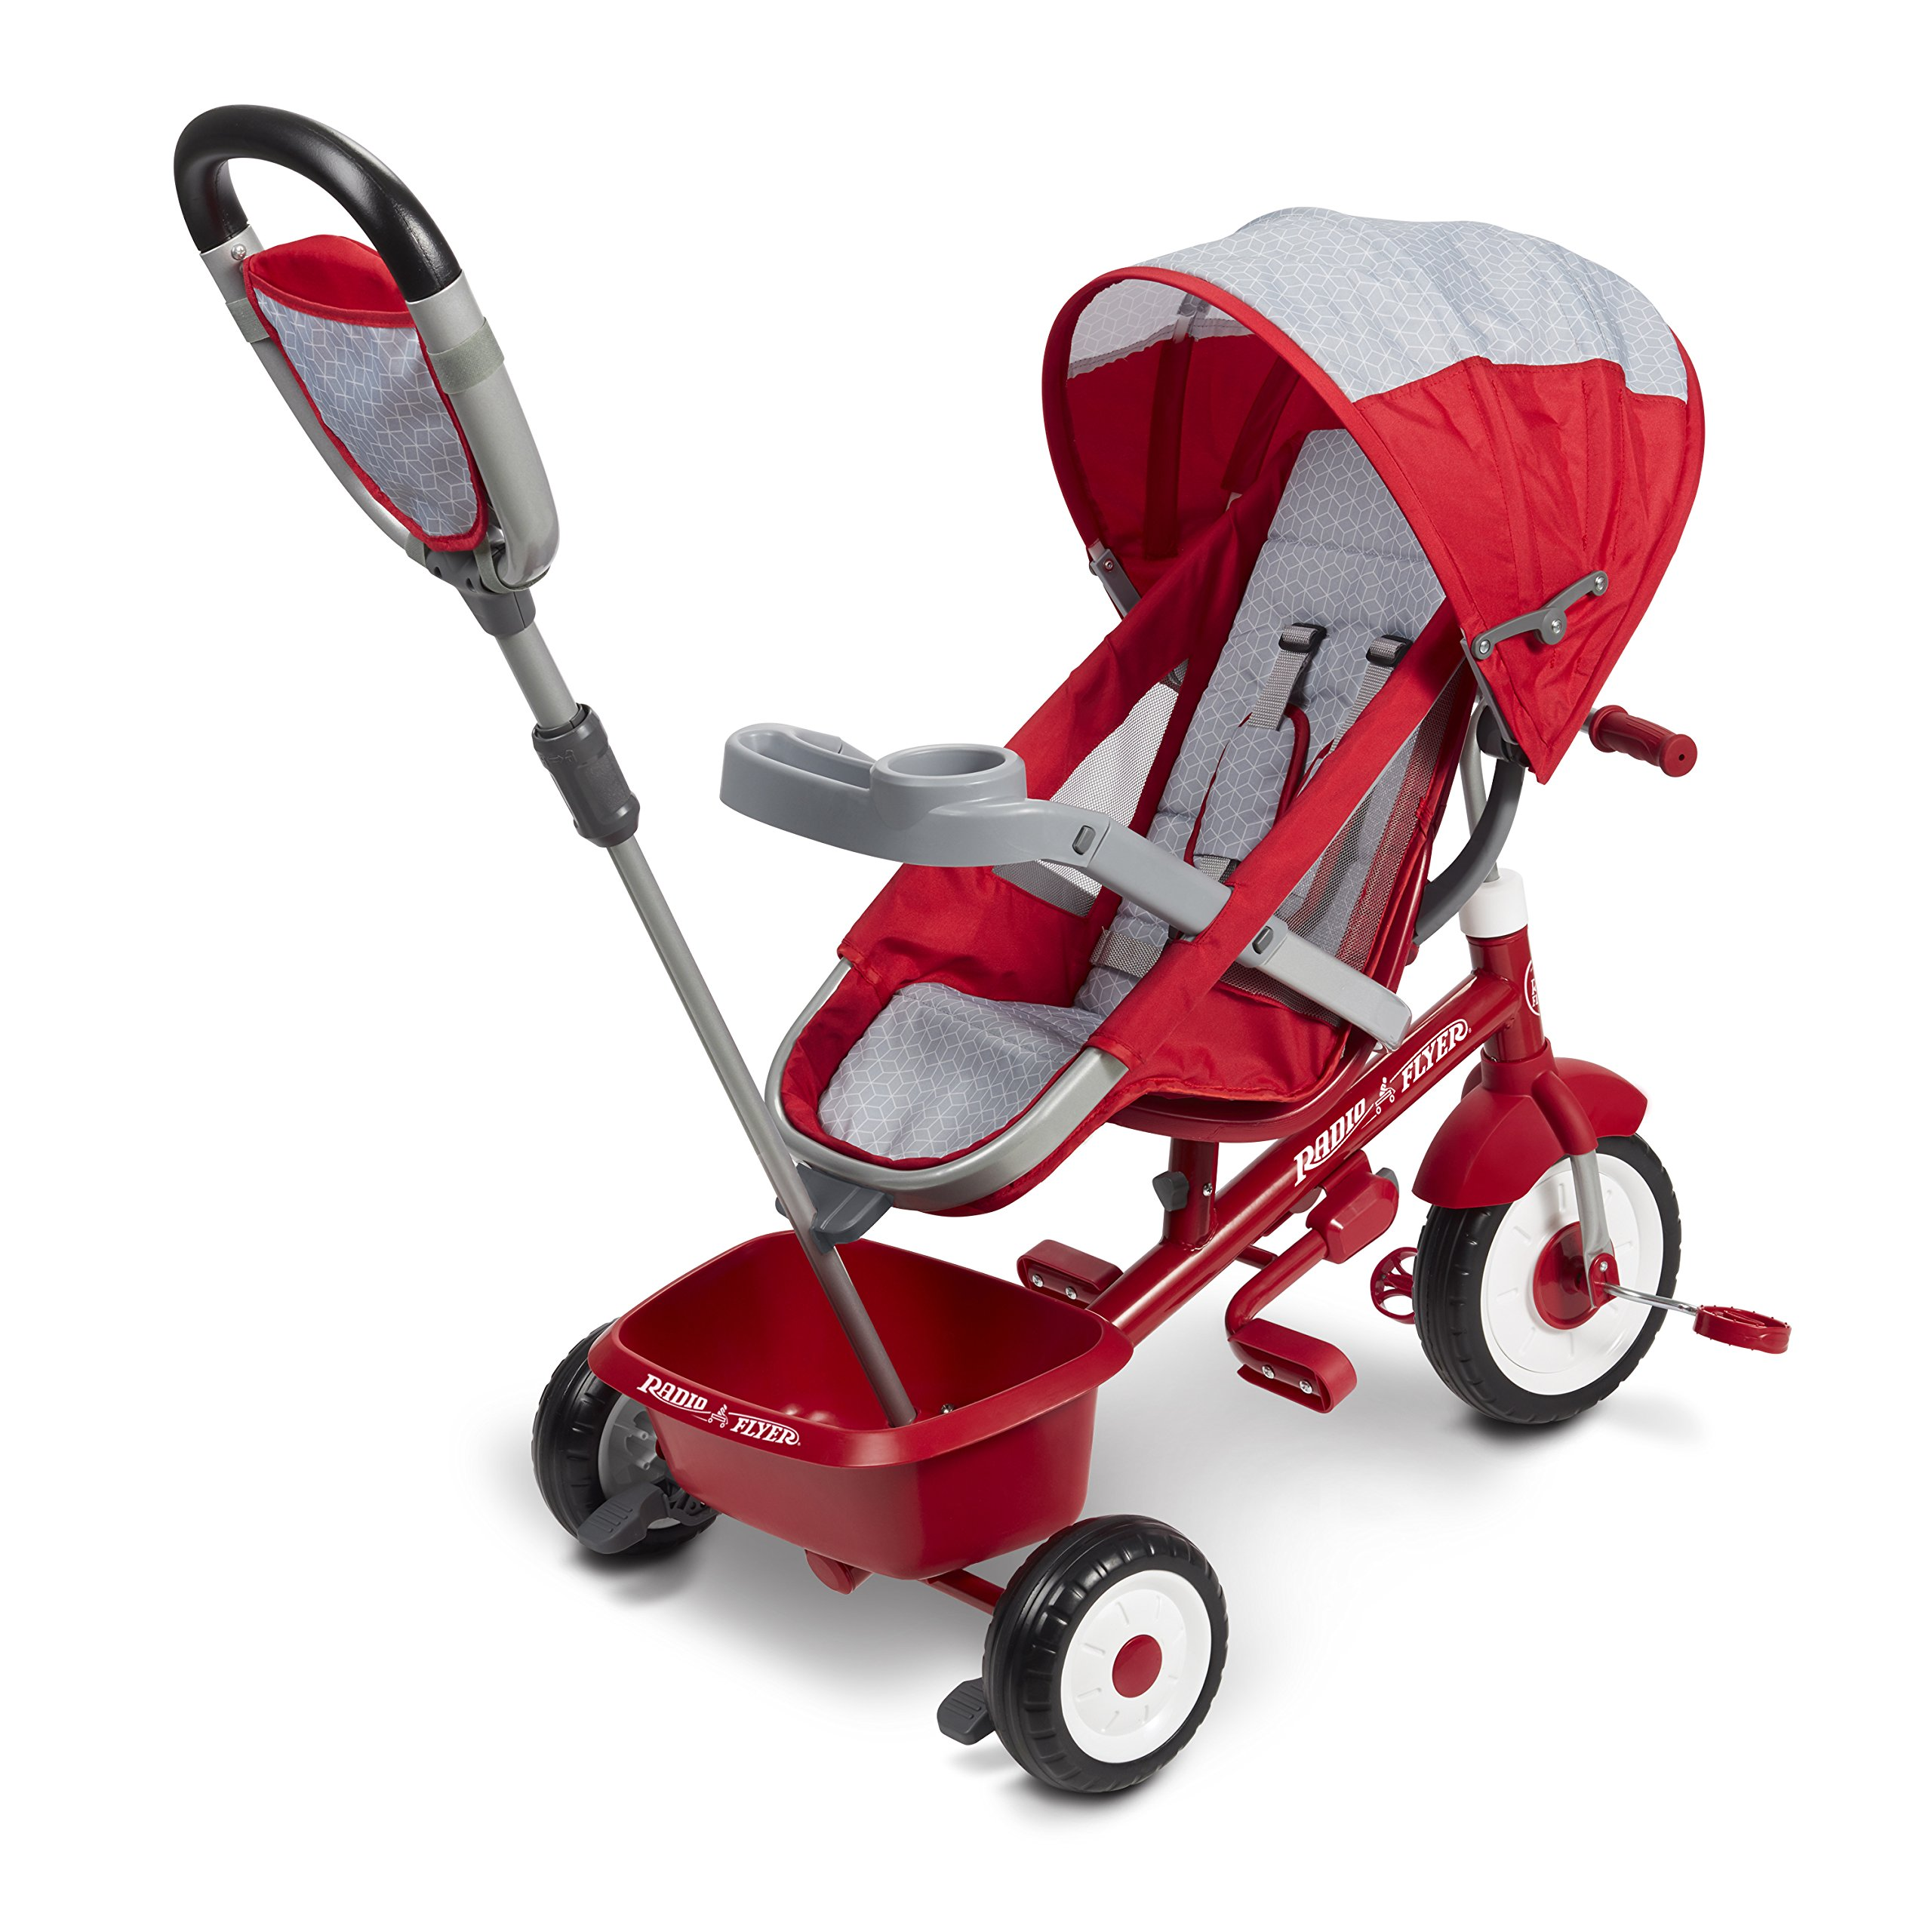 Radio Flyer 5-in-1 Stroll 'N Trike